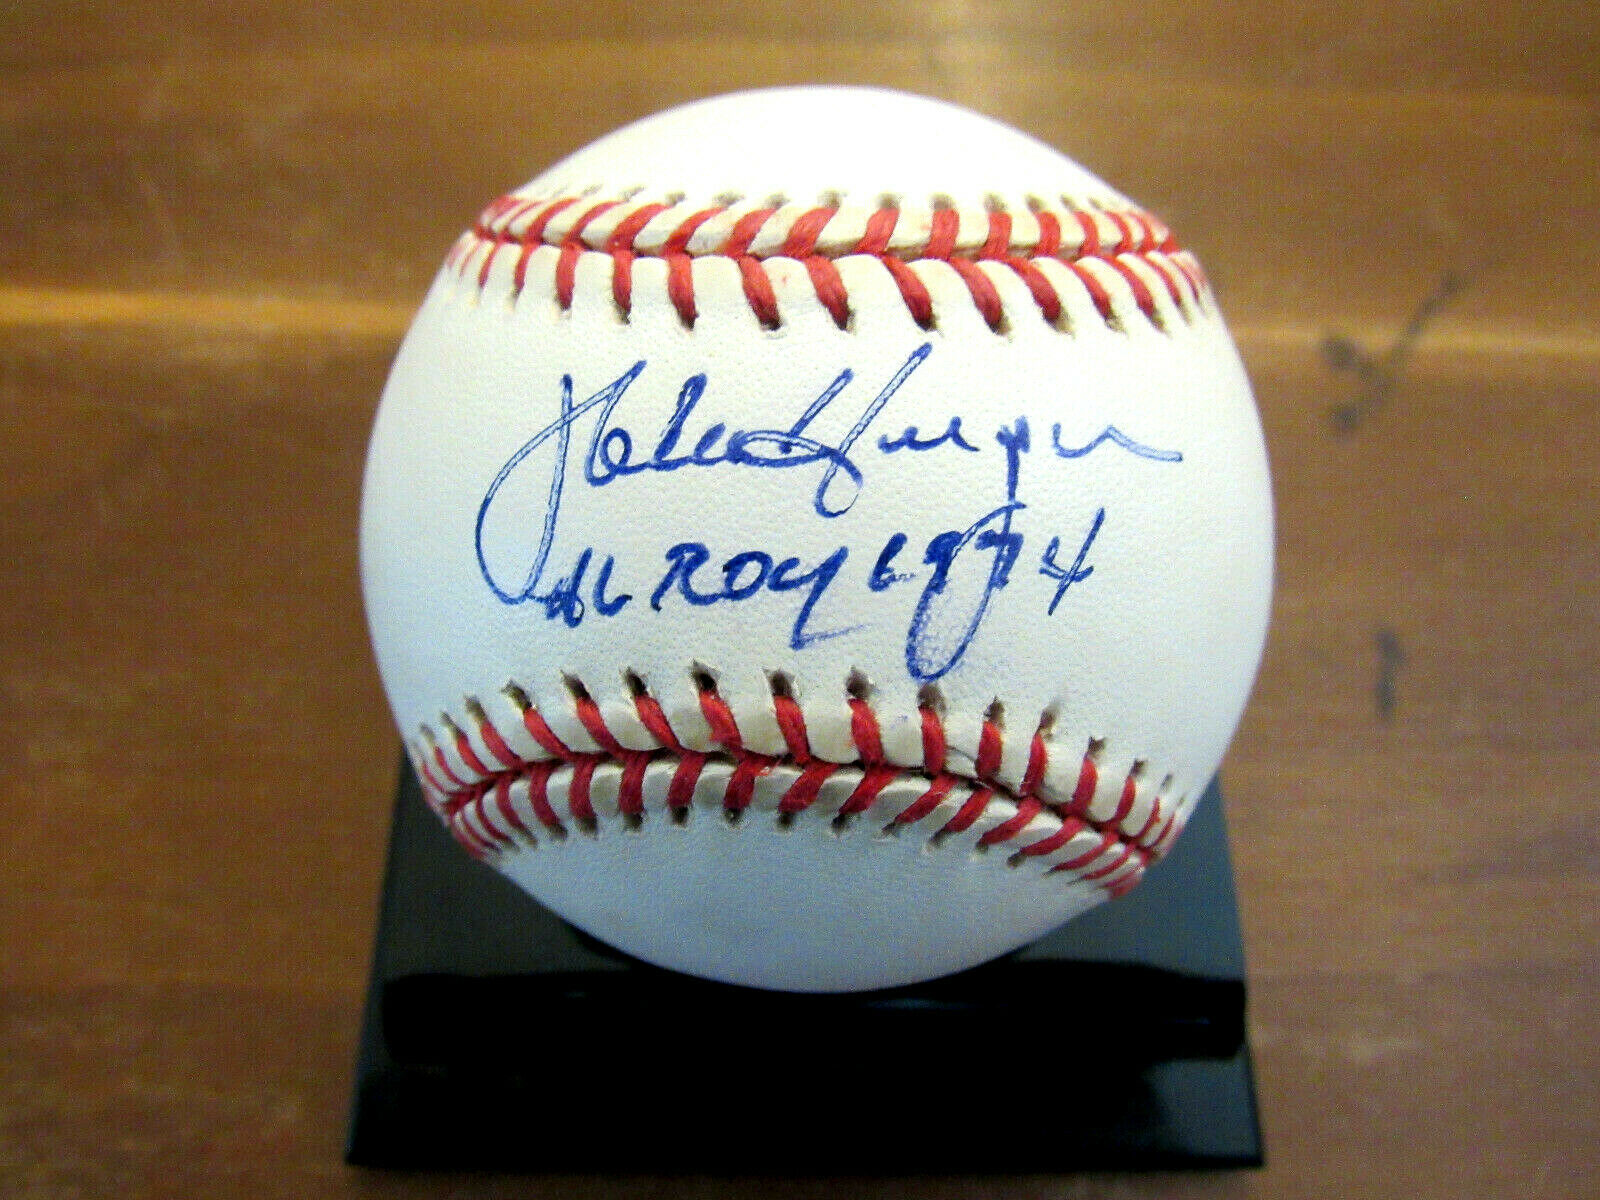 Primary image for MIKE HARGROVE AL ROY 1974 1ST BASEMAN & MANAGER SIGNED AUTO VTG OAL BASEBALL JSA